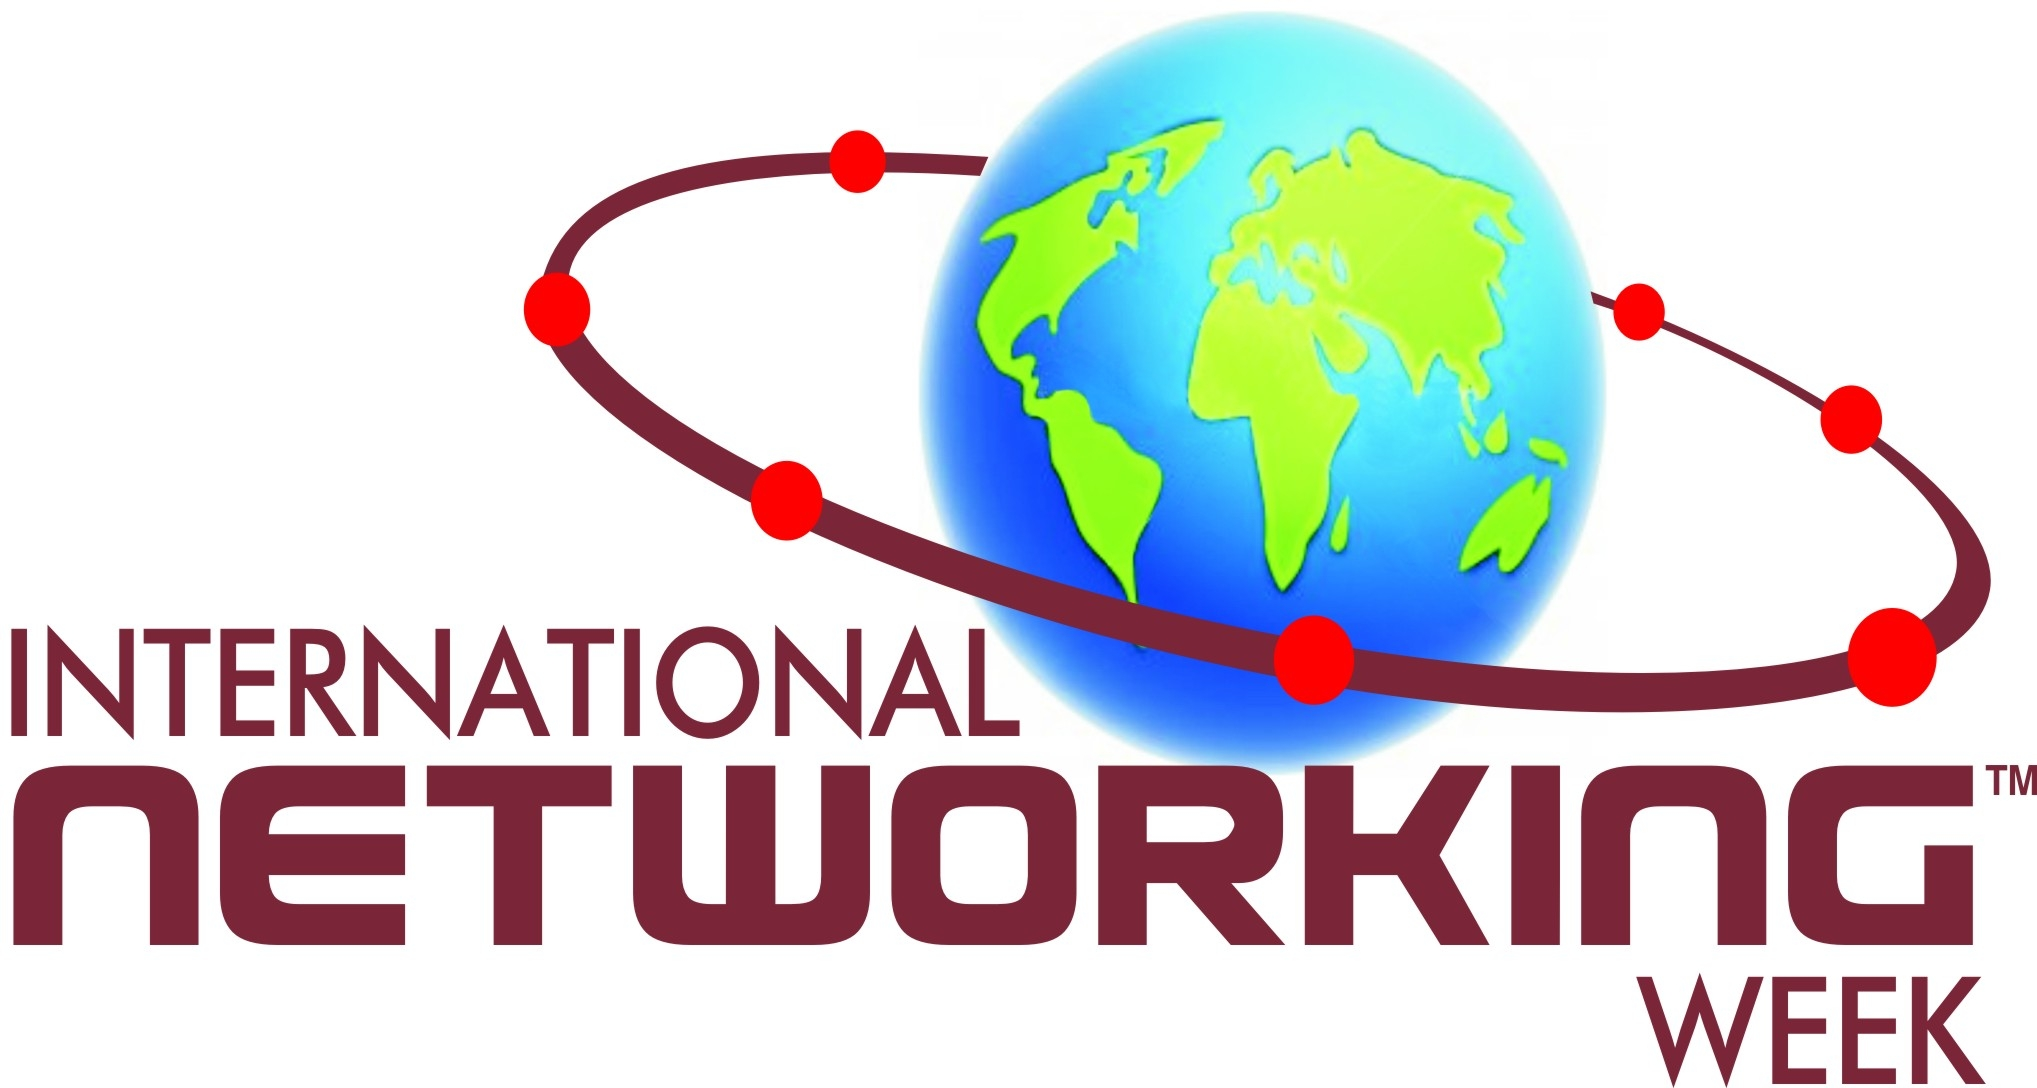 INTERNATIONAL NETWORKING WEEK